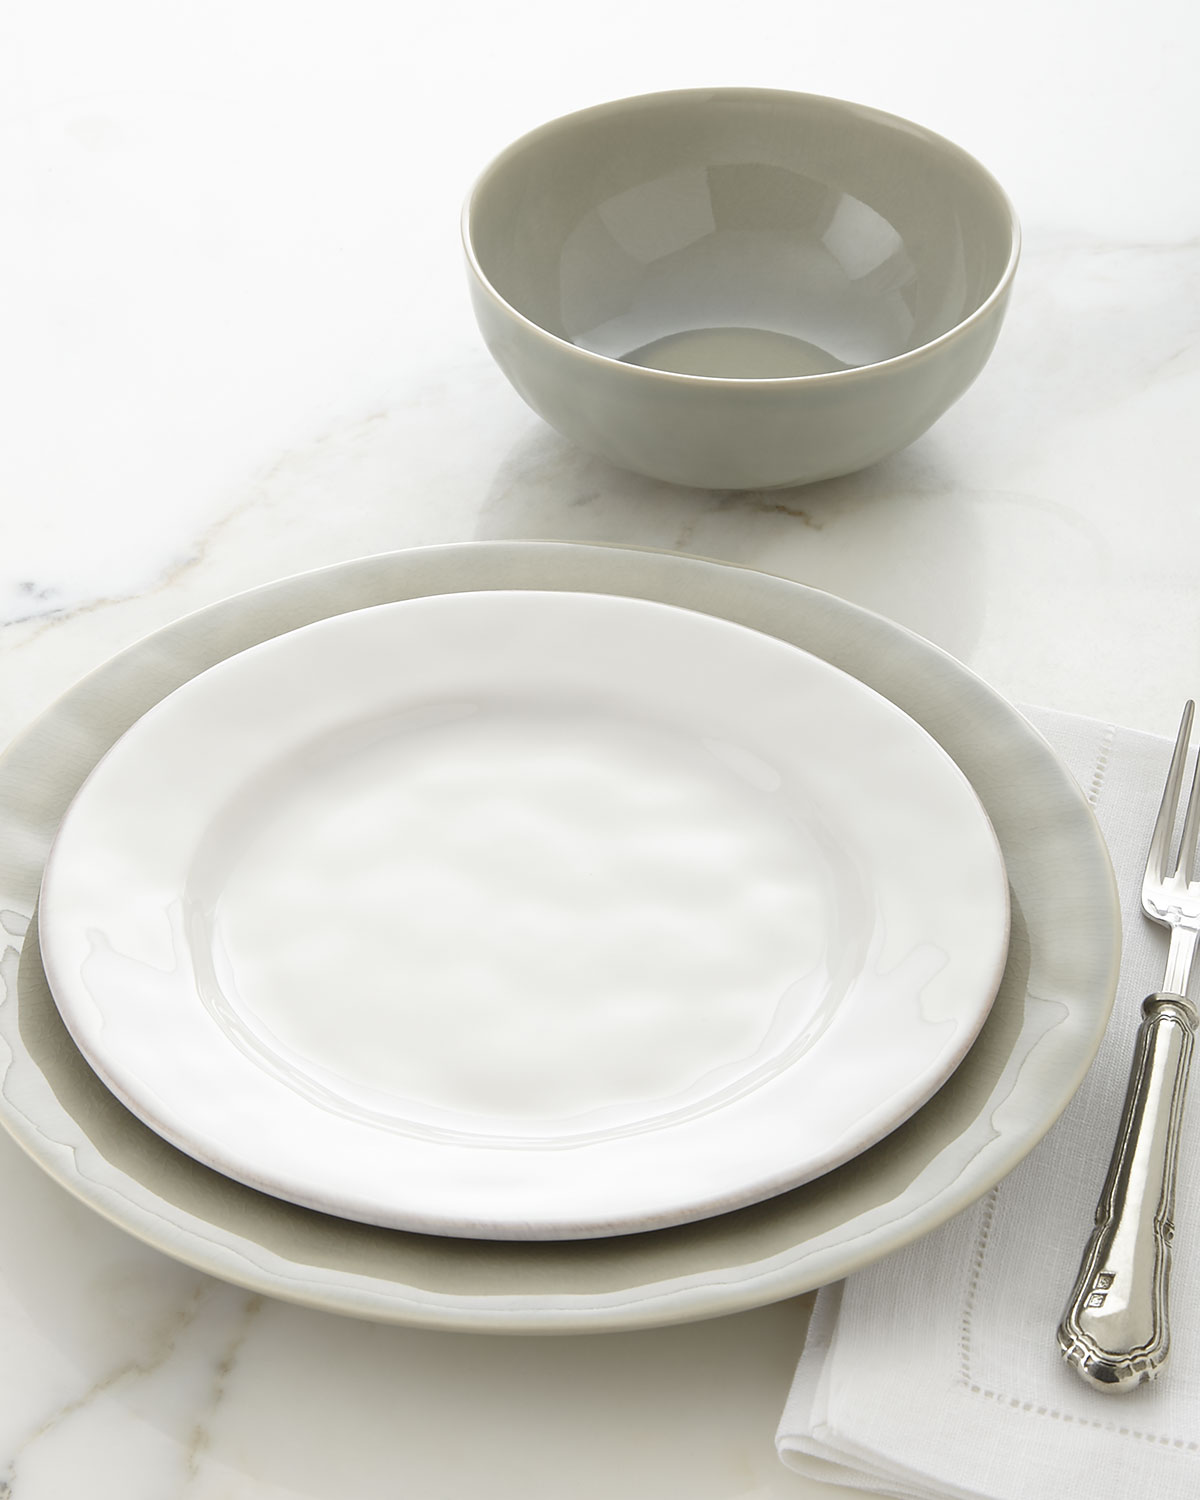 Puro Whitewash Dinner Plate : dinner plate storage containers - Pezcame.Com